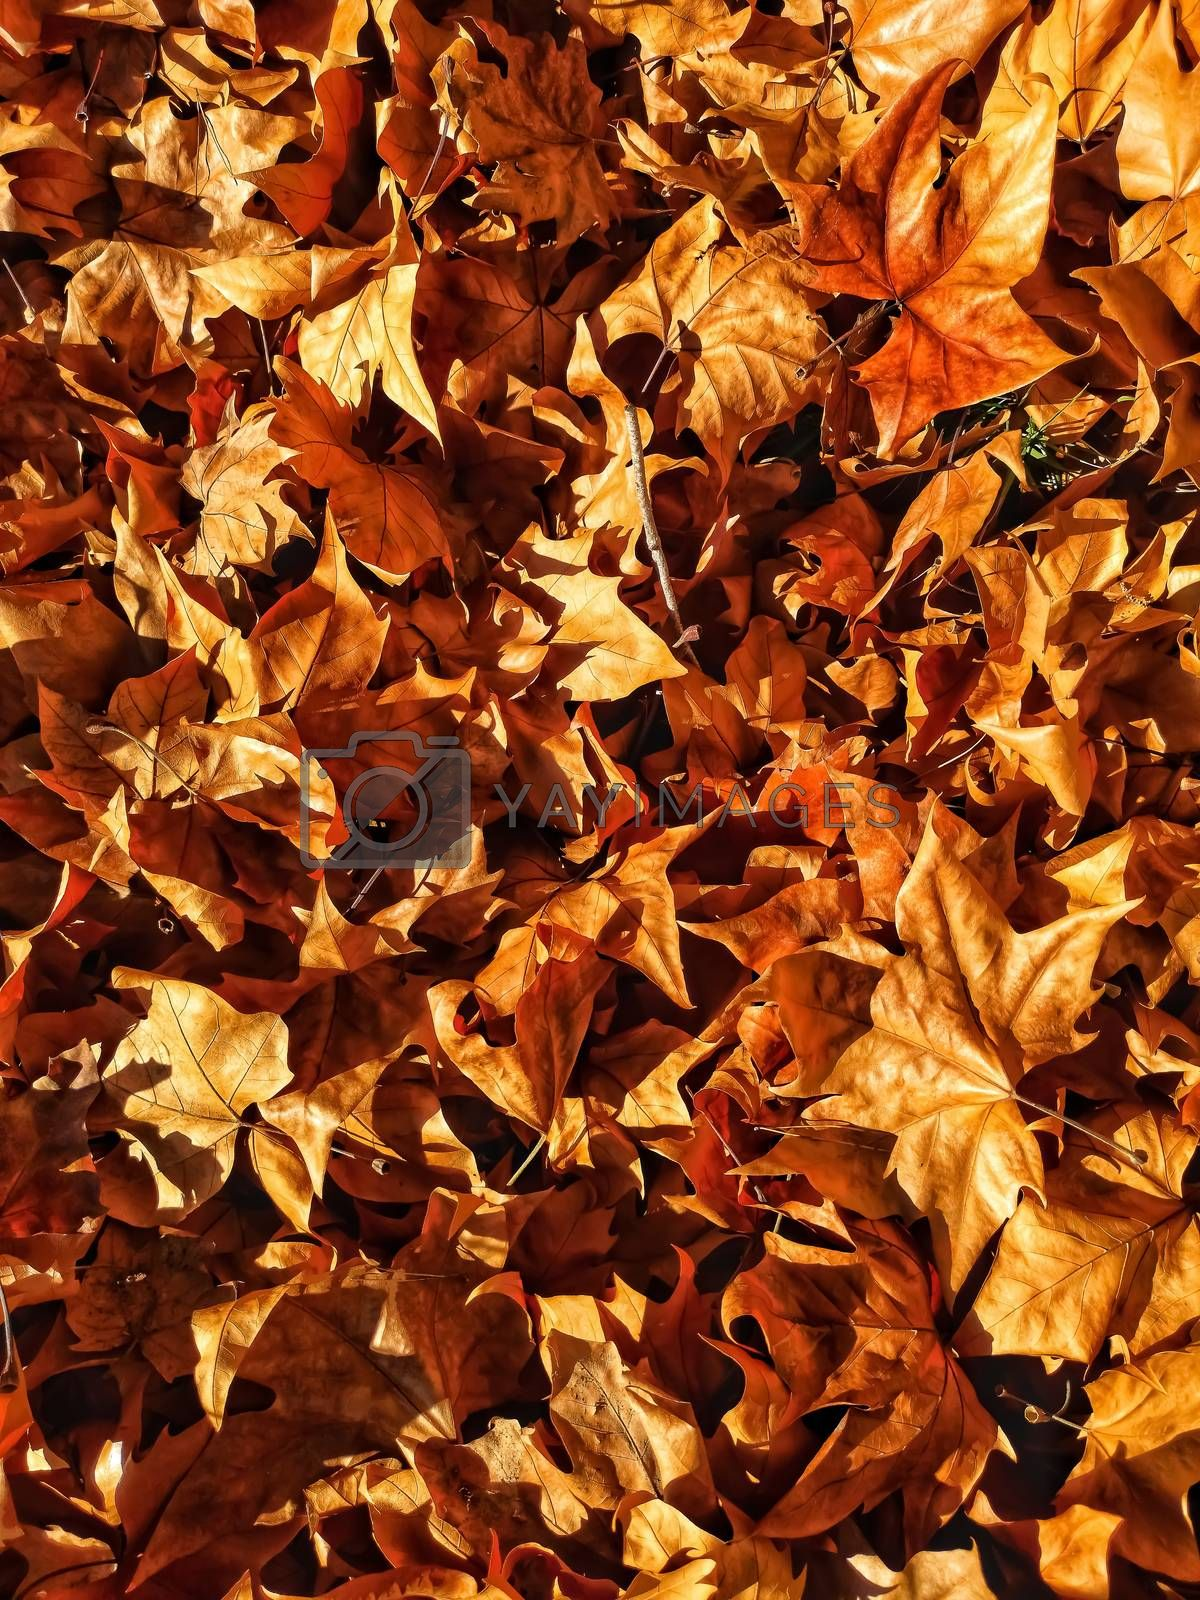 Dry autumn leaves in brown tones